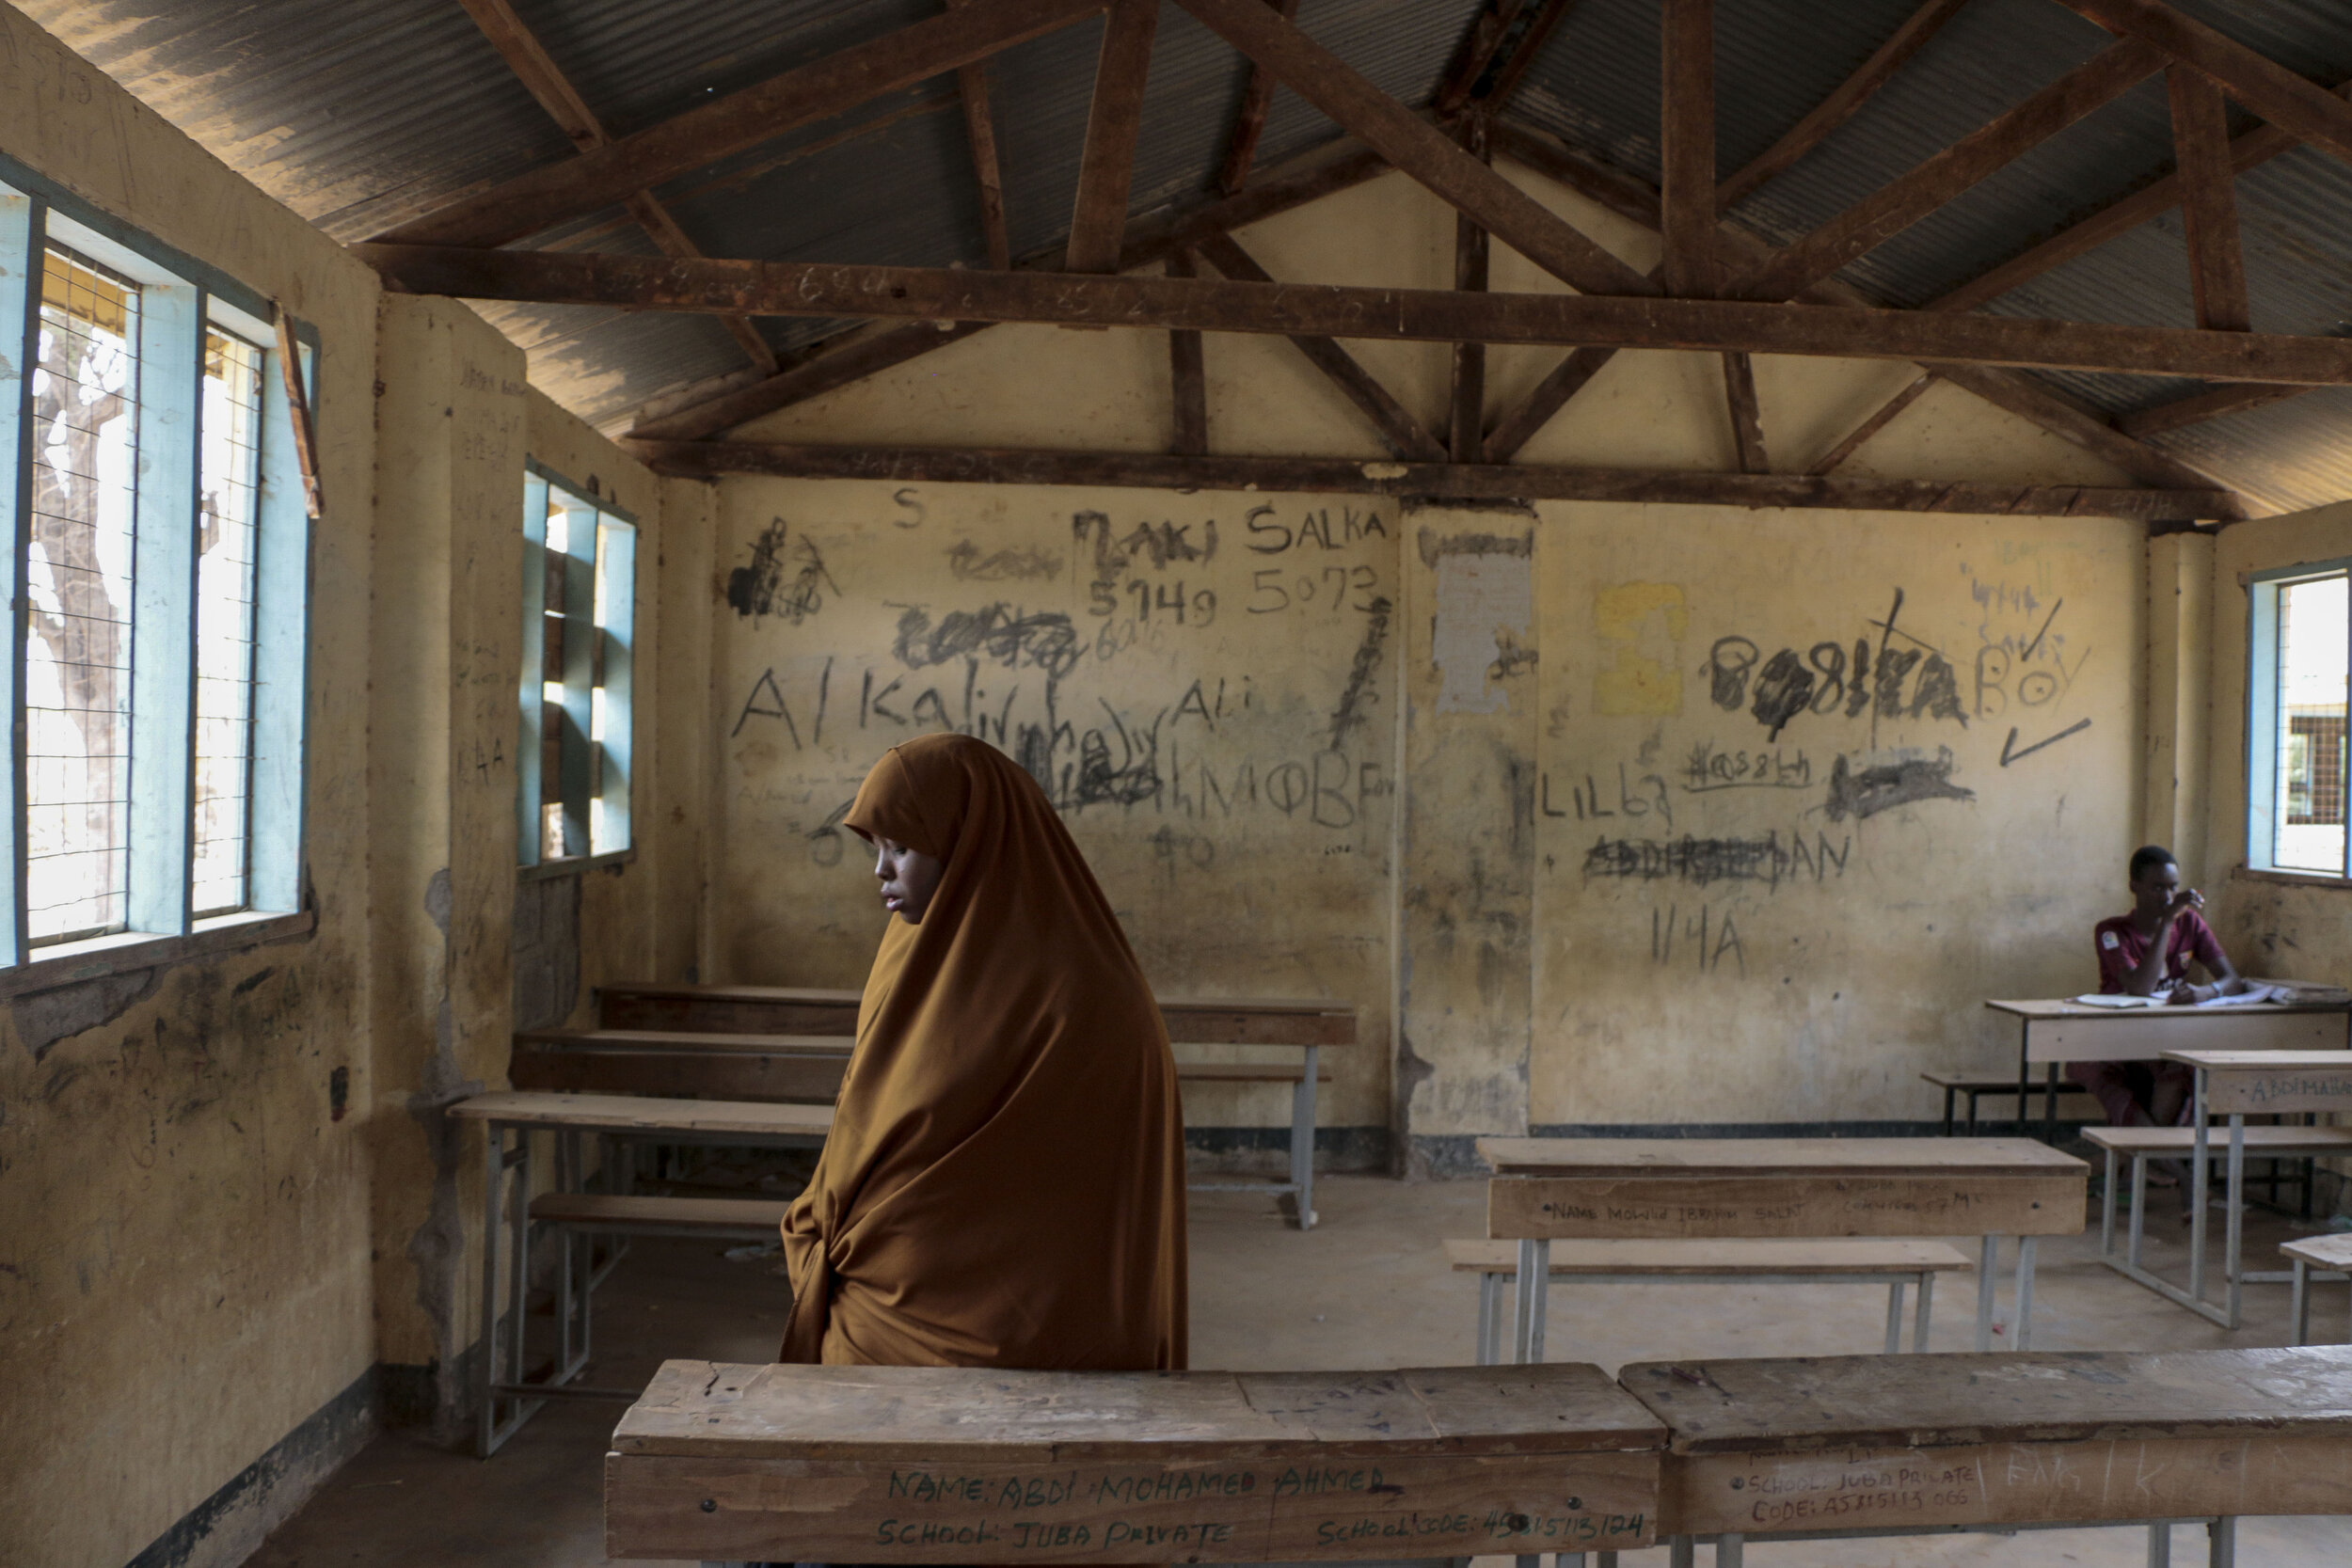 Hamdi Kosar stands up after sitting at a desk in her former elementary school, Juba Primary School, Aug. 19 at the Dagahaley Refugee Camp in Dadaab, Kenya. The school offers many forms of enrichment, including the debate team which she was a part of during her time there. Kosar's father was also a school teacher and taught at Juba Primary School.